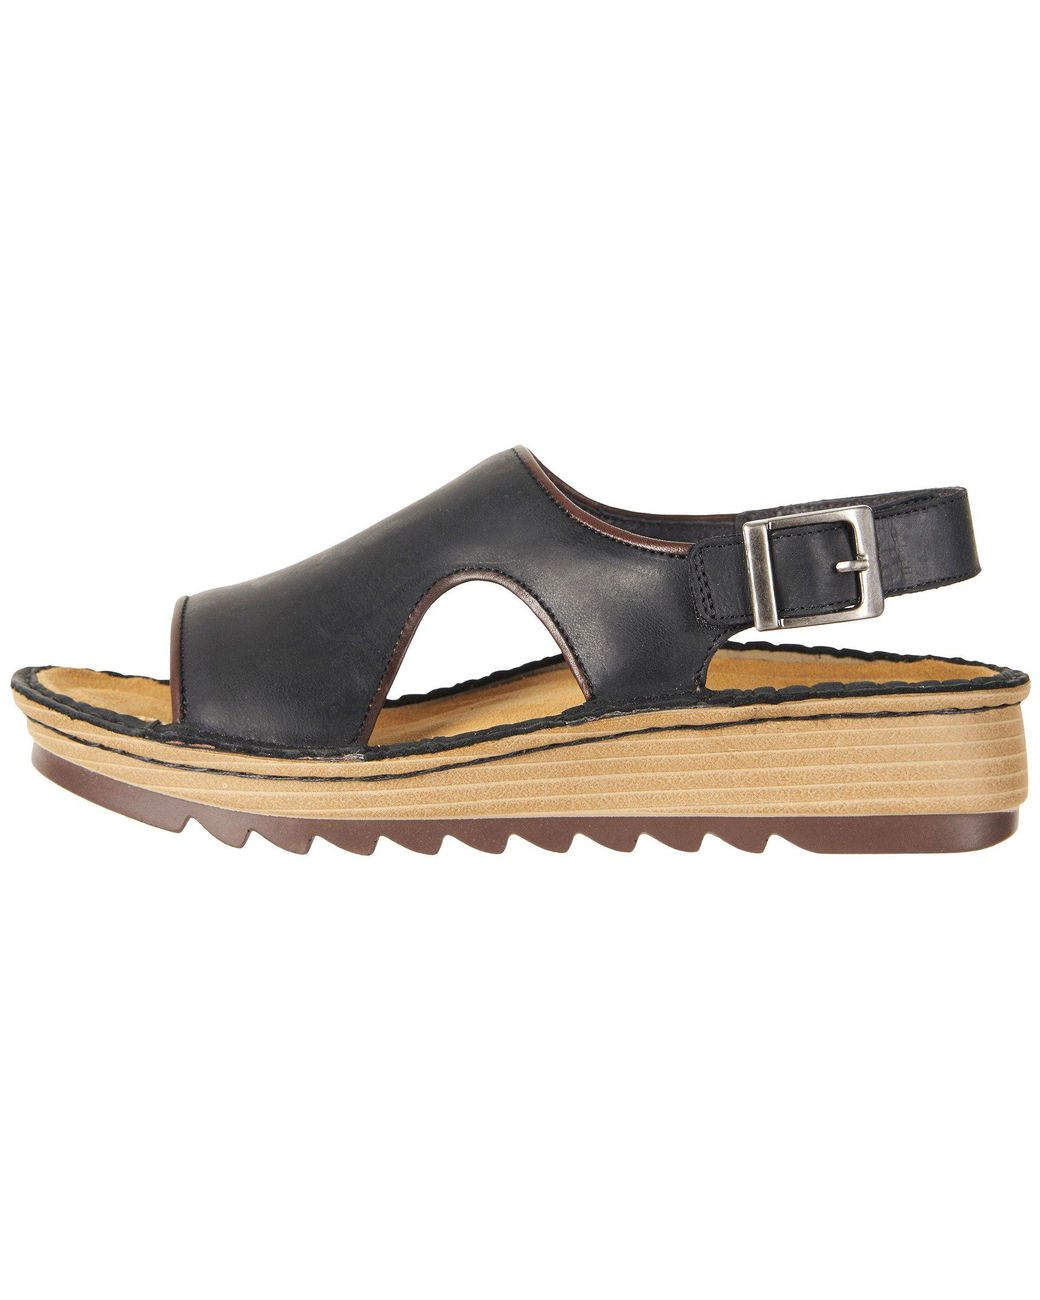 a5beb2f981fa Lyst - Naot Ficus (oily Coal Nubuck toffee Brown Leather) Women s Shoes